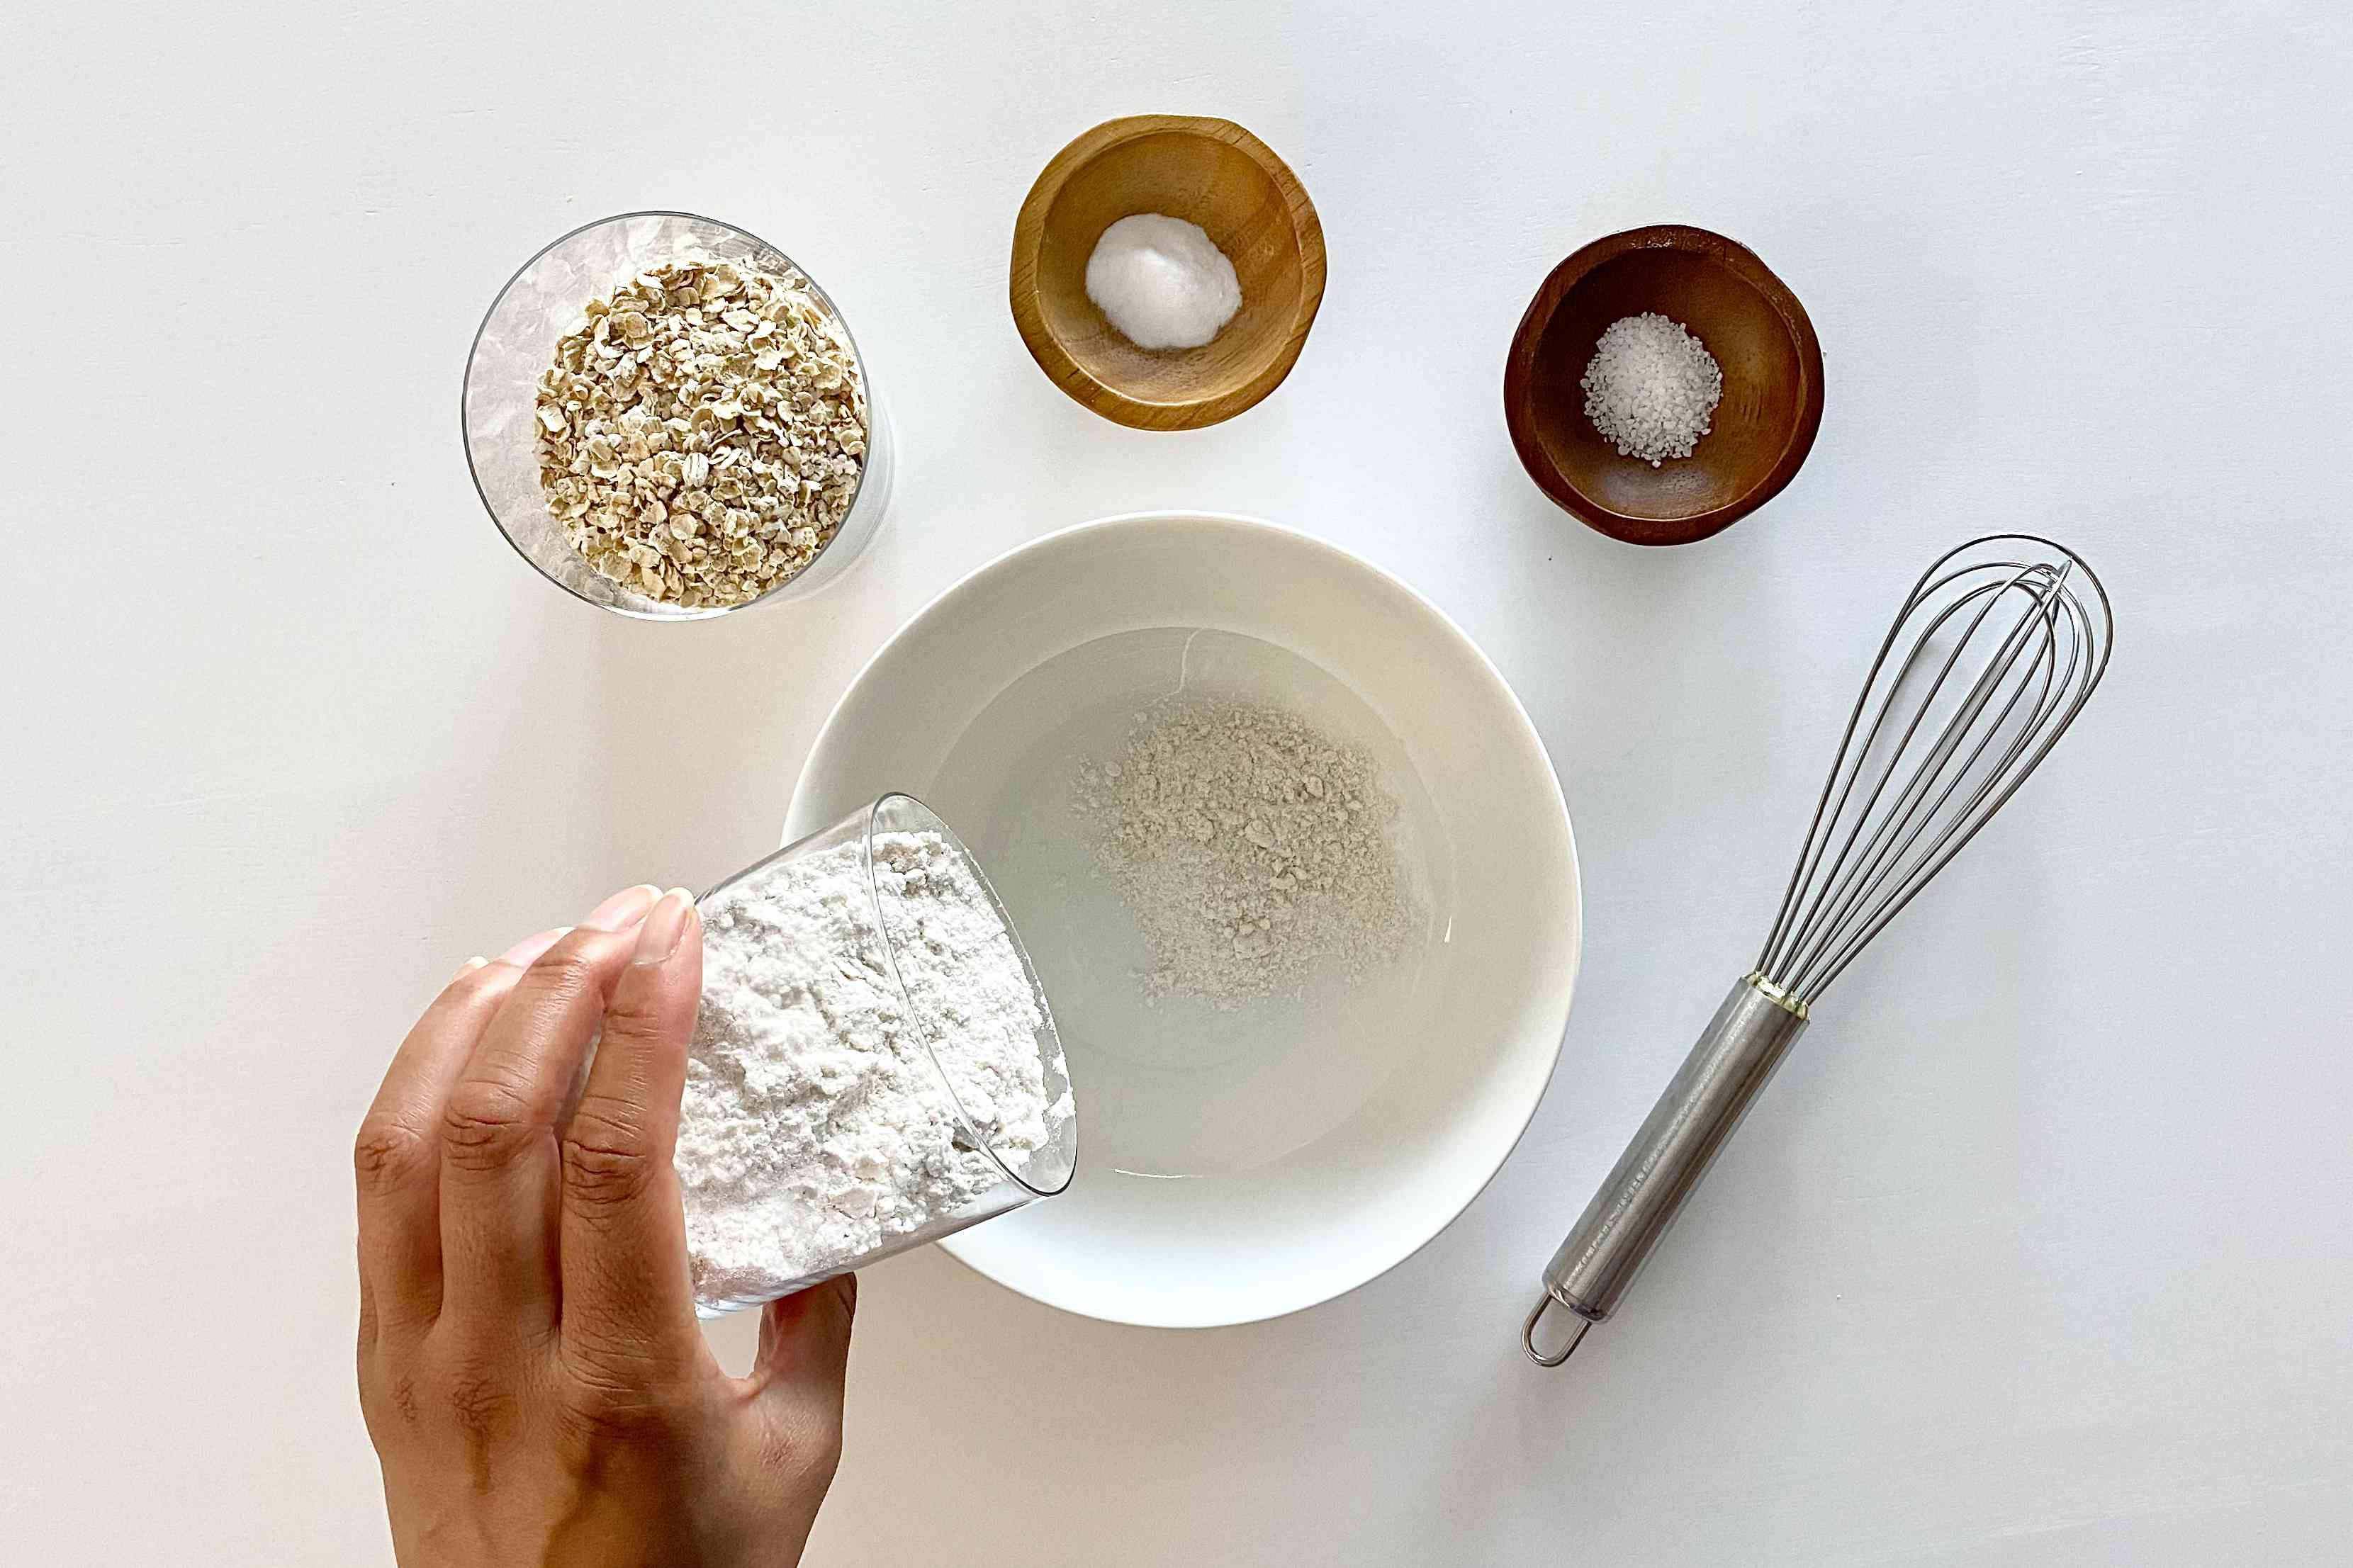 Adding flour to a bowl to make Bar Cookies of the Gluten Free Monster Variety.